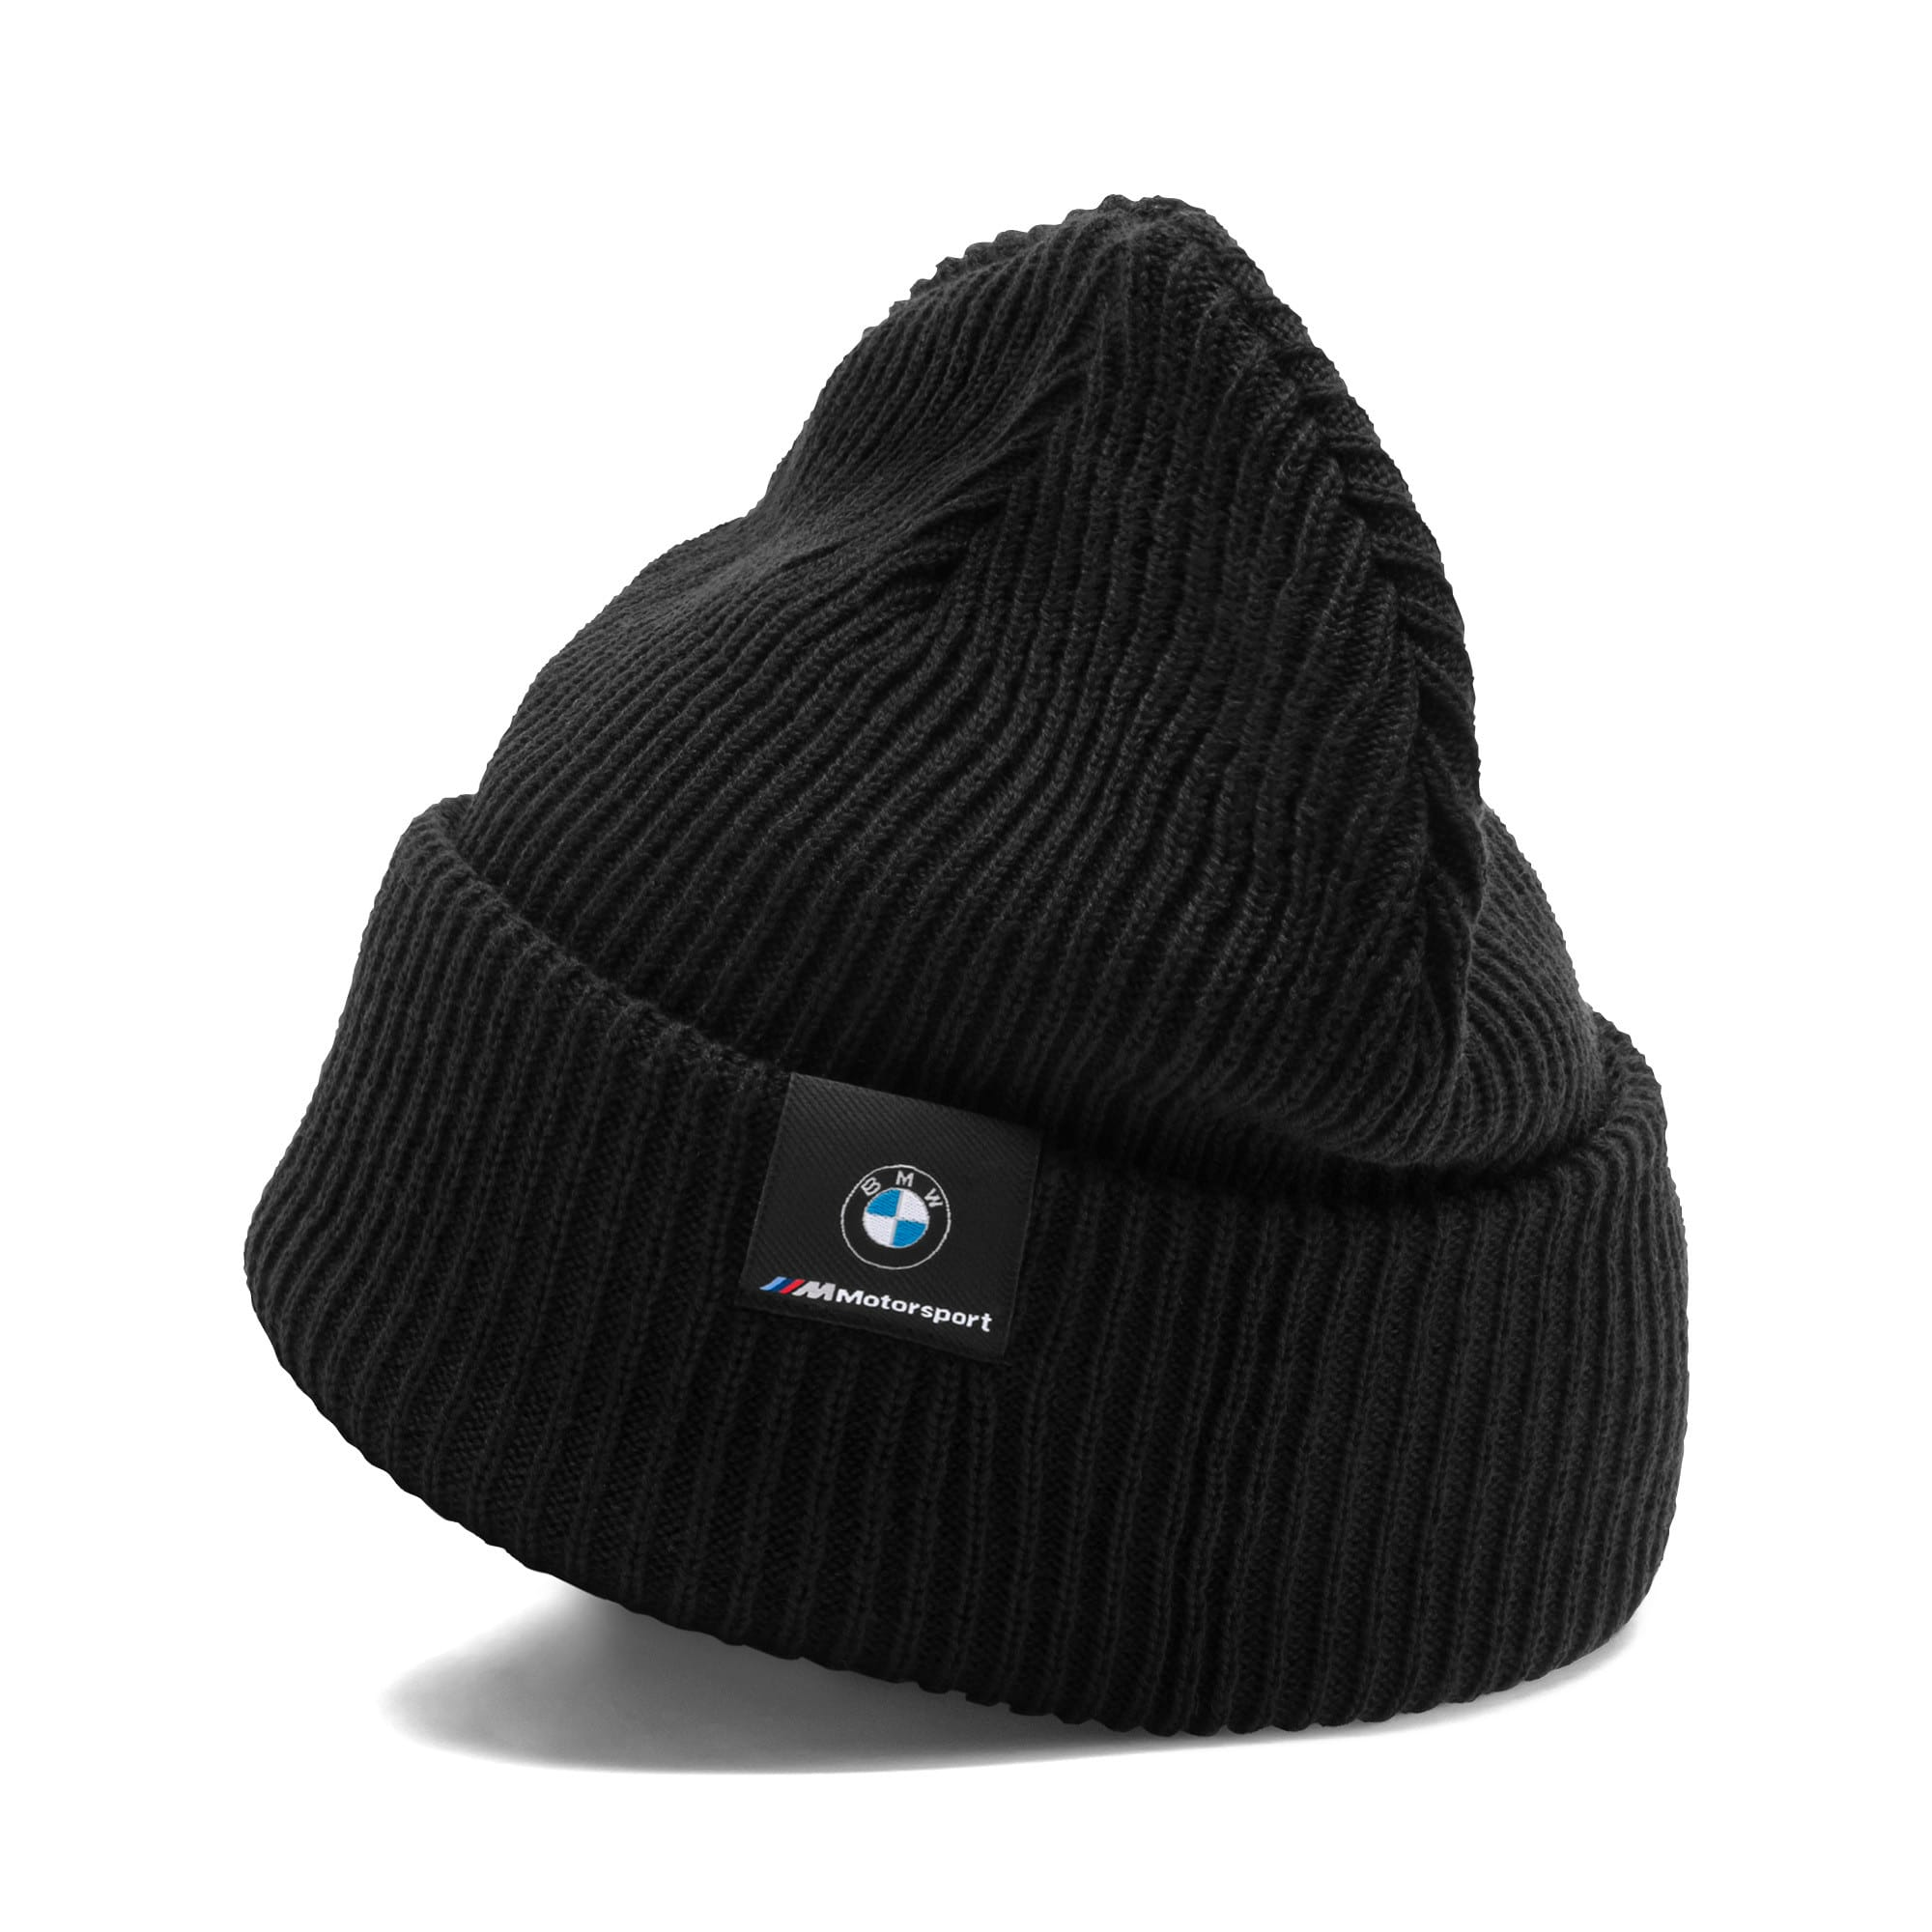 Thumbnail 1 of BMW Motorsport beanie, Puma Black, medium